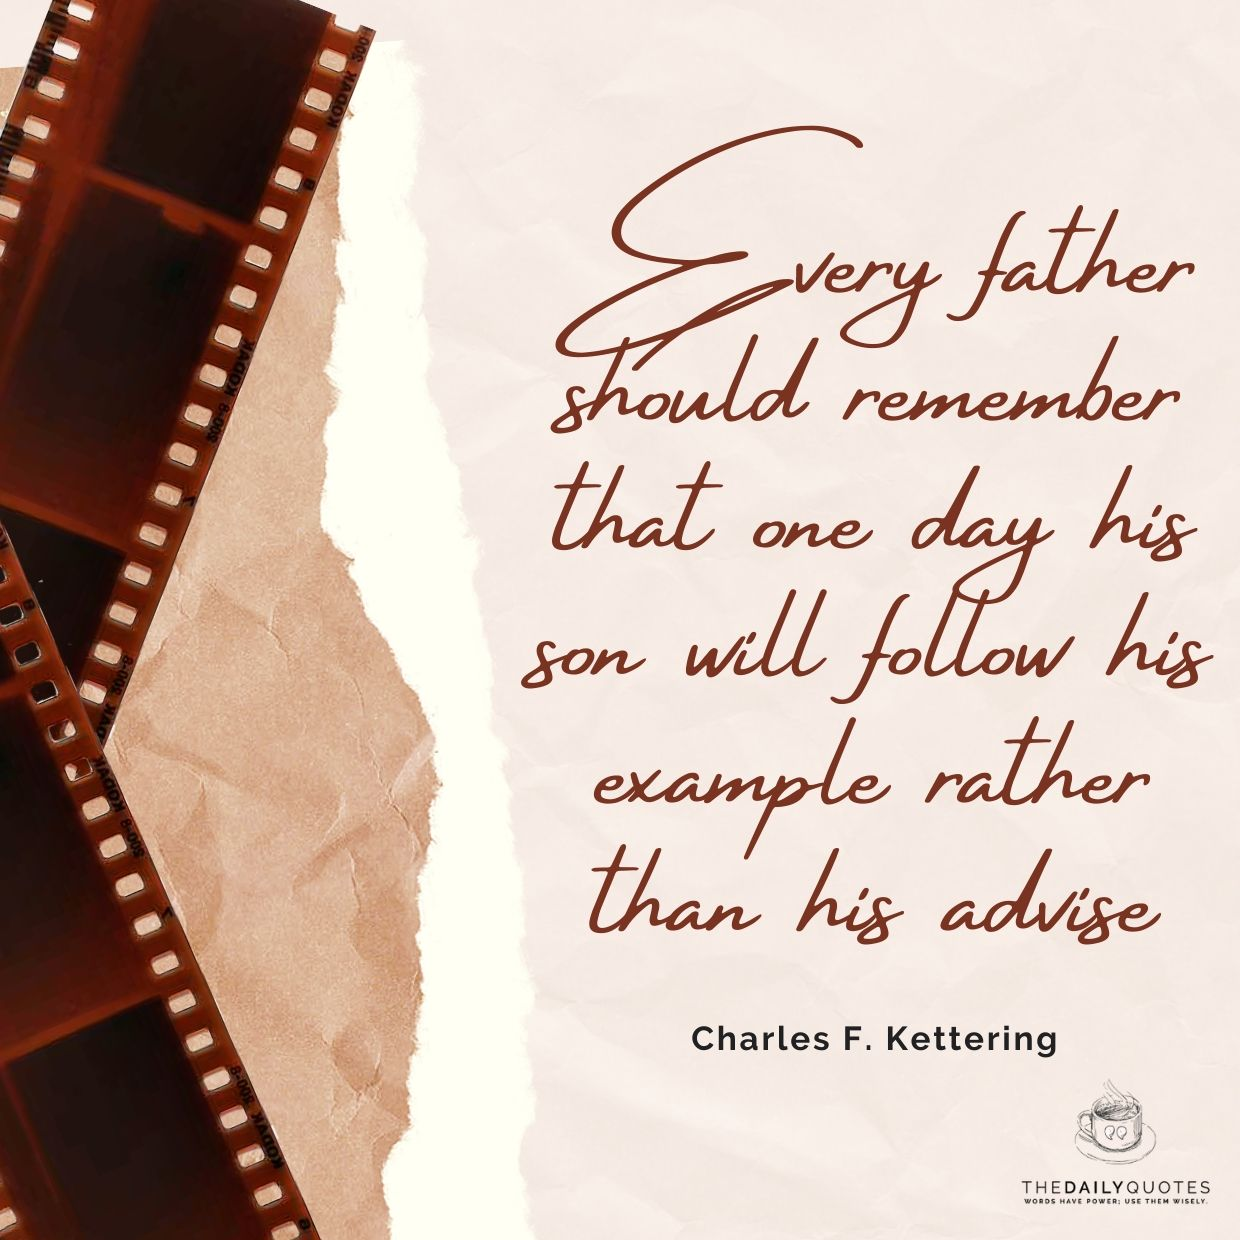 Every father should remember that one day his son will follow his example rather than his advise